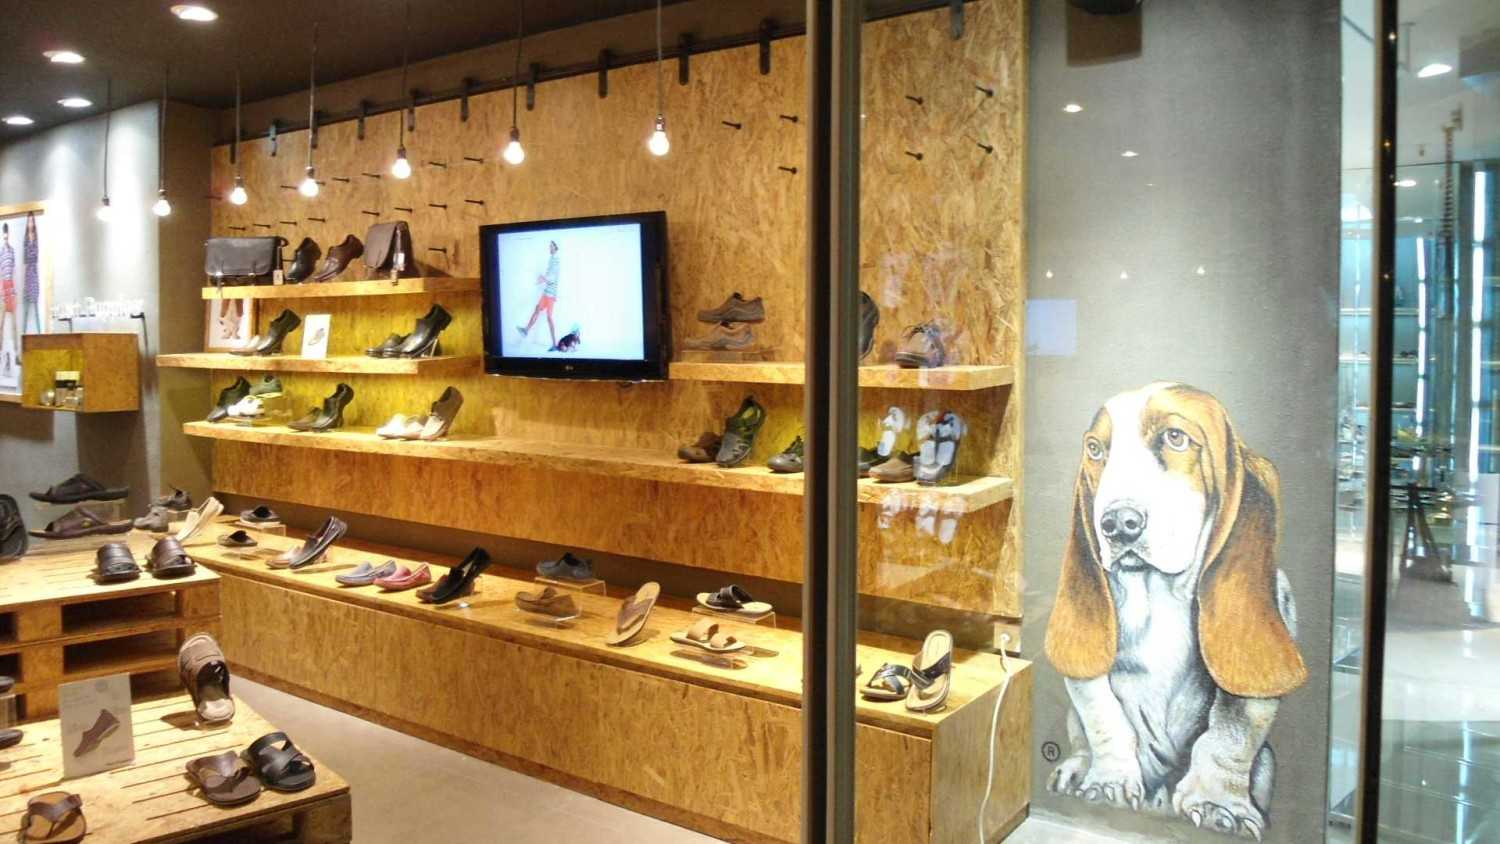 Canvas Mkc Store Hush Puppies Bali Bali Display Minimalis 21072